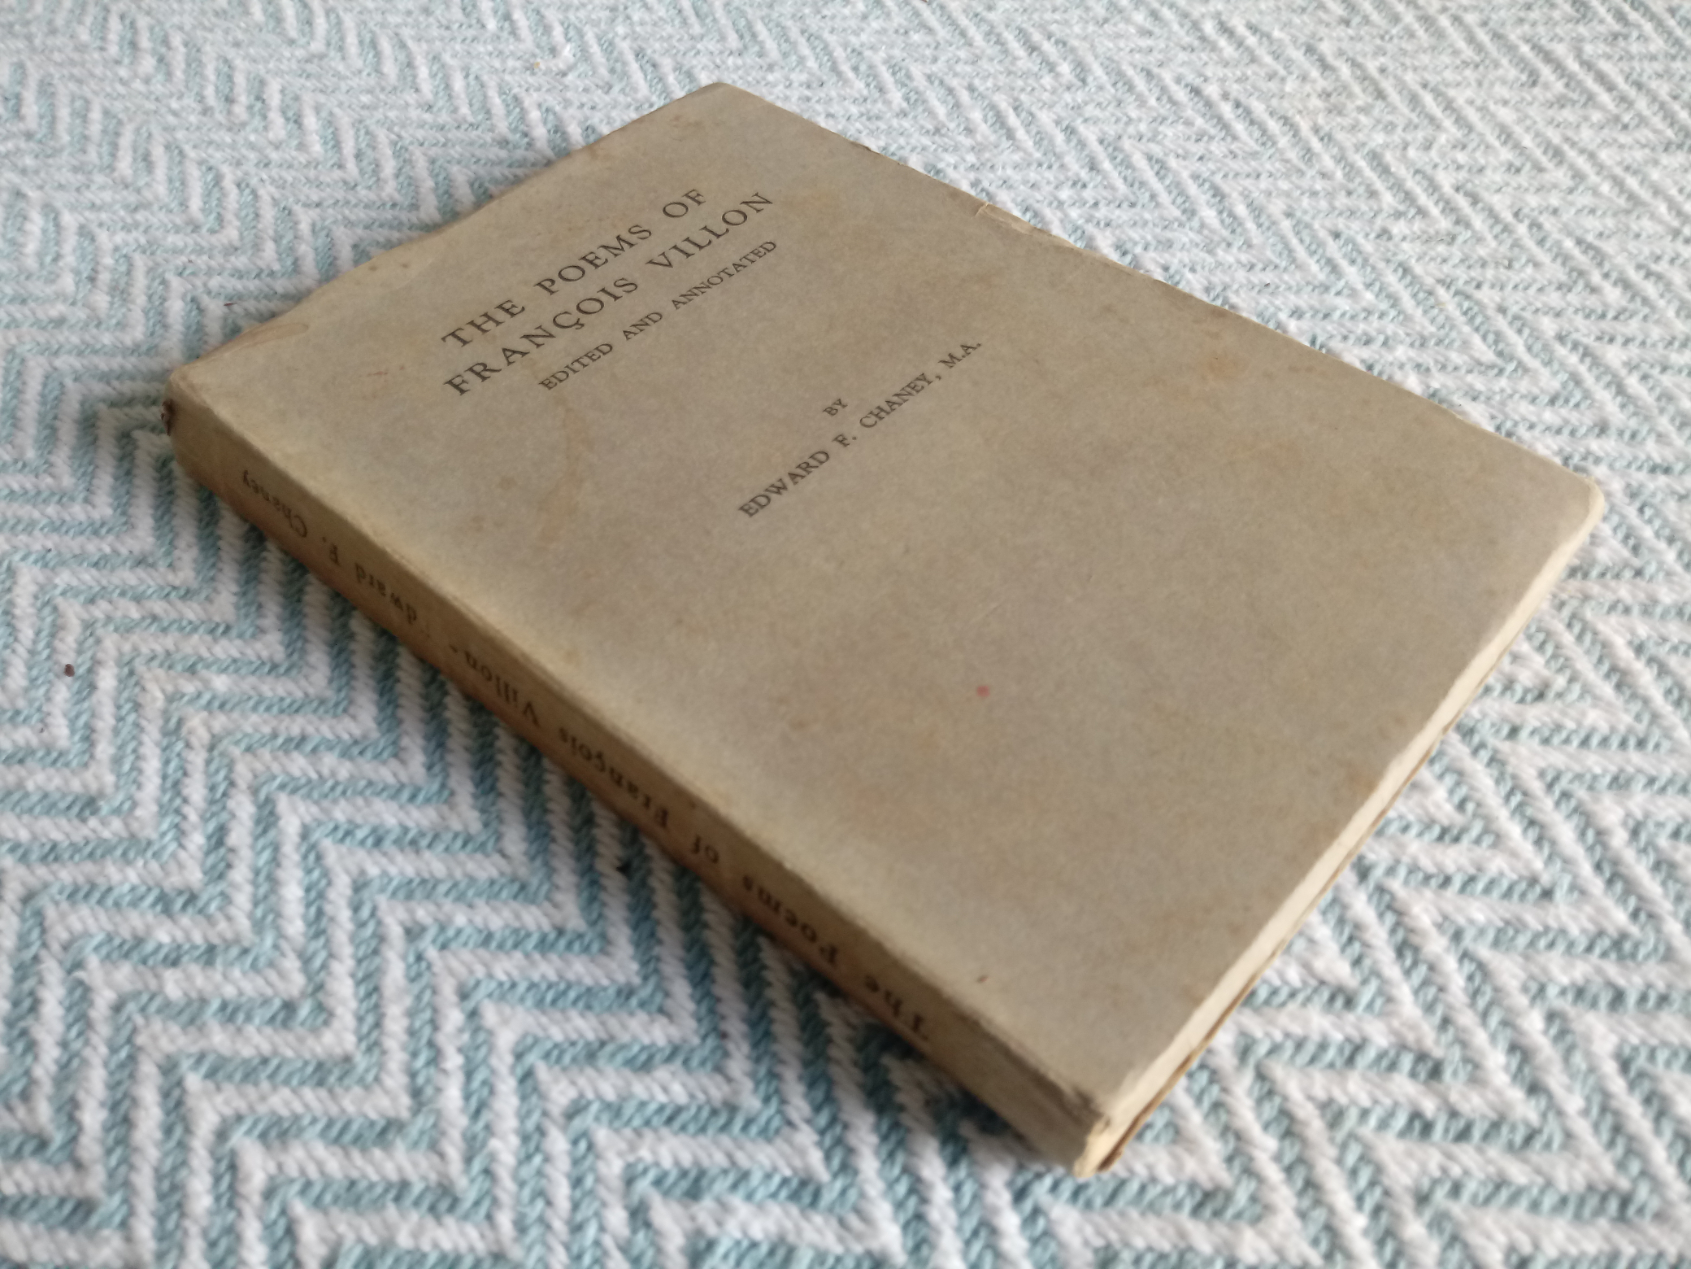 The Poems Of Francois Villon by Edward F. Chaney M. A. softback book 198 pages signed by owner